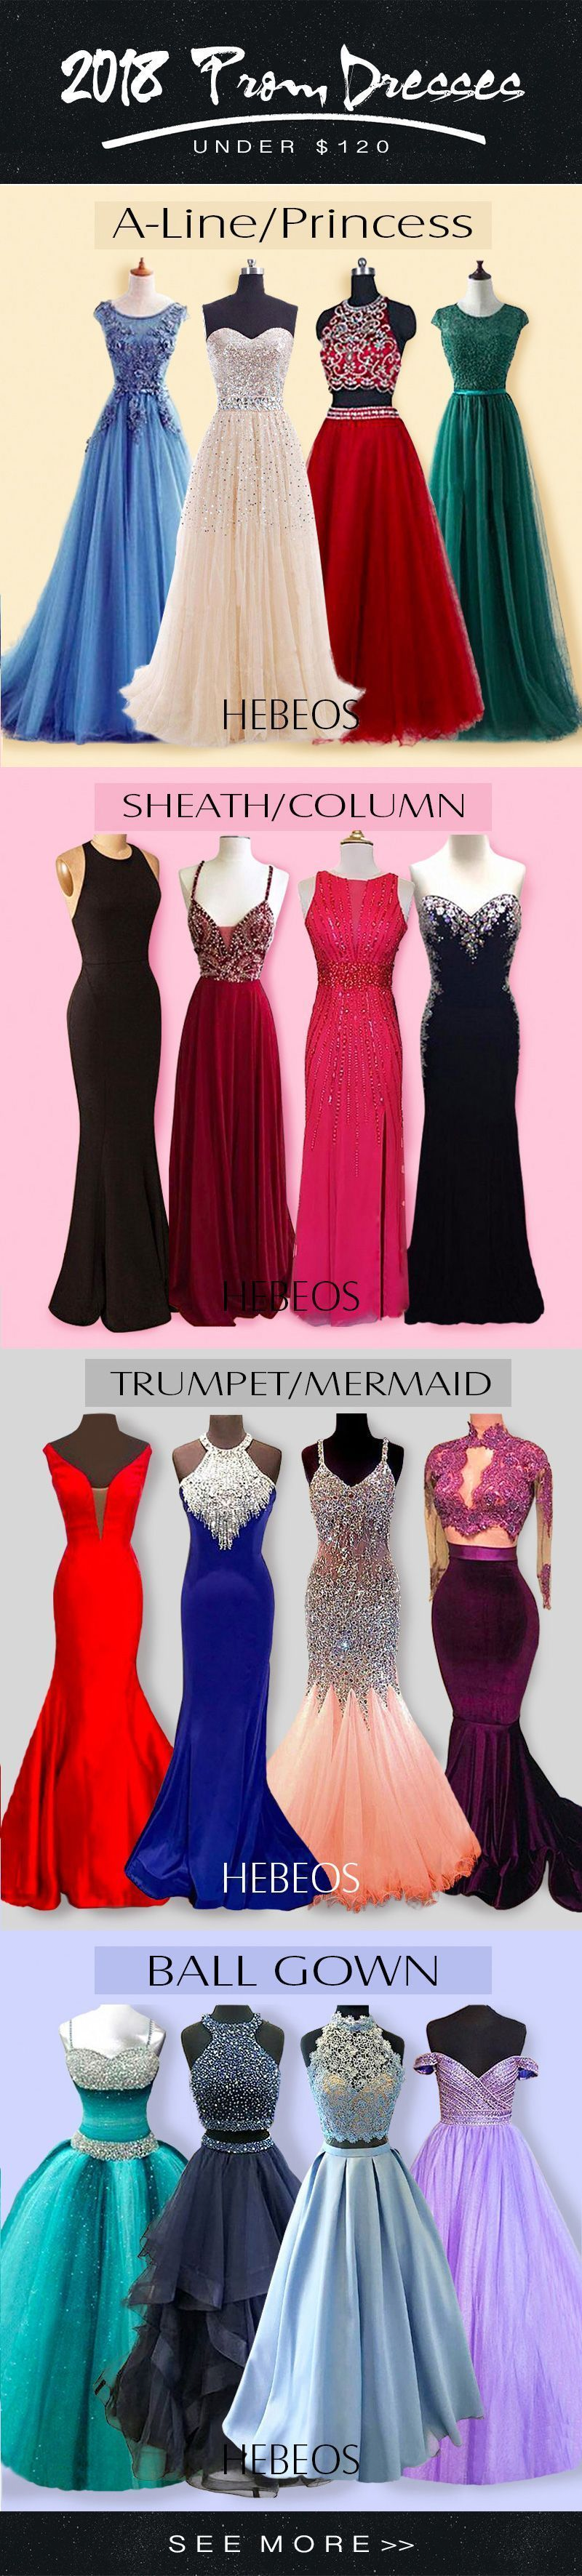 Looking for prom dress ideas to inspire you for the big night find